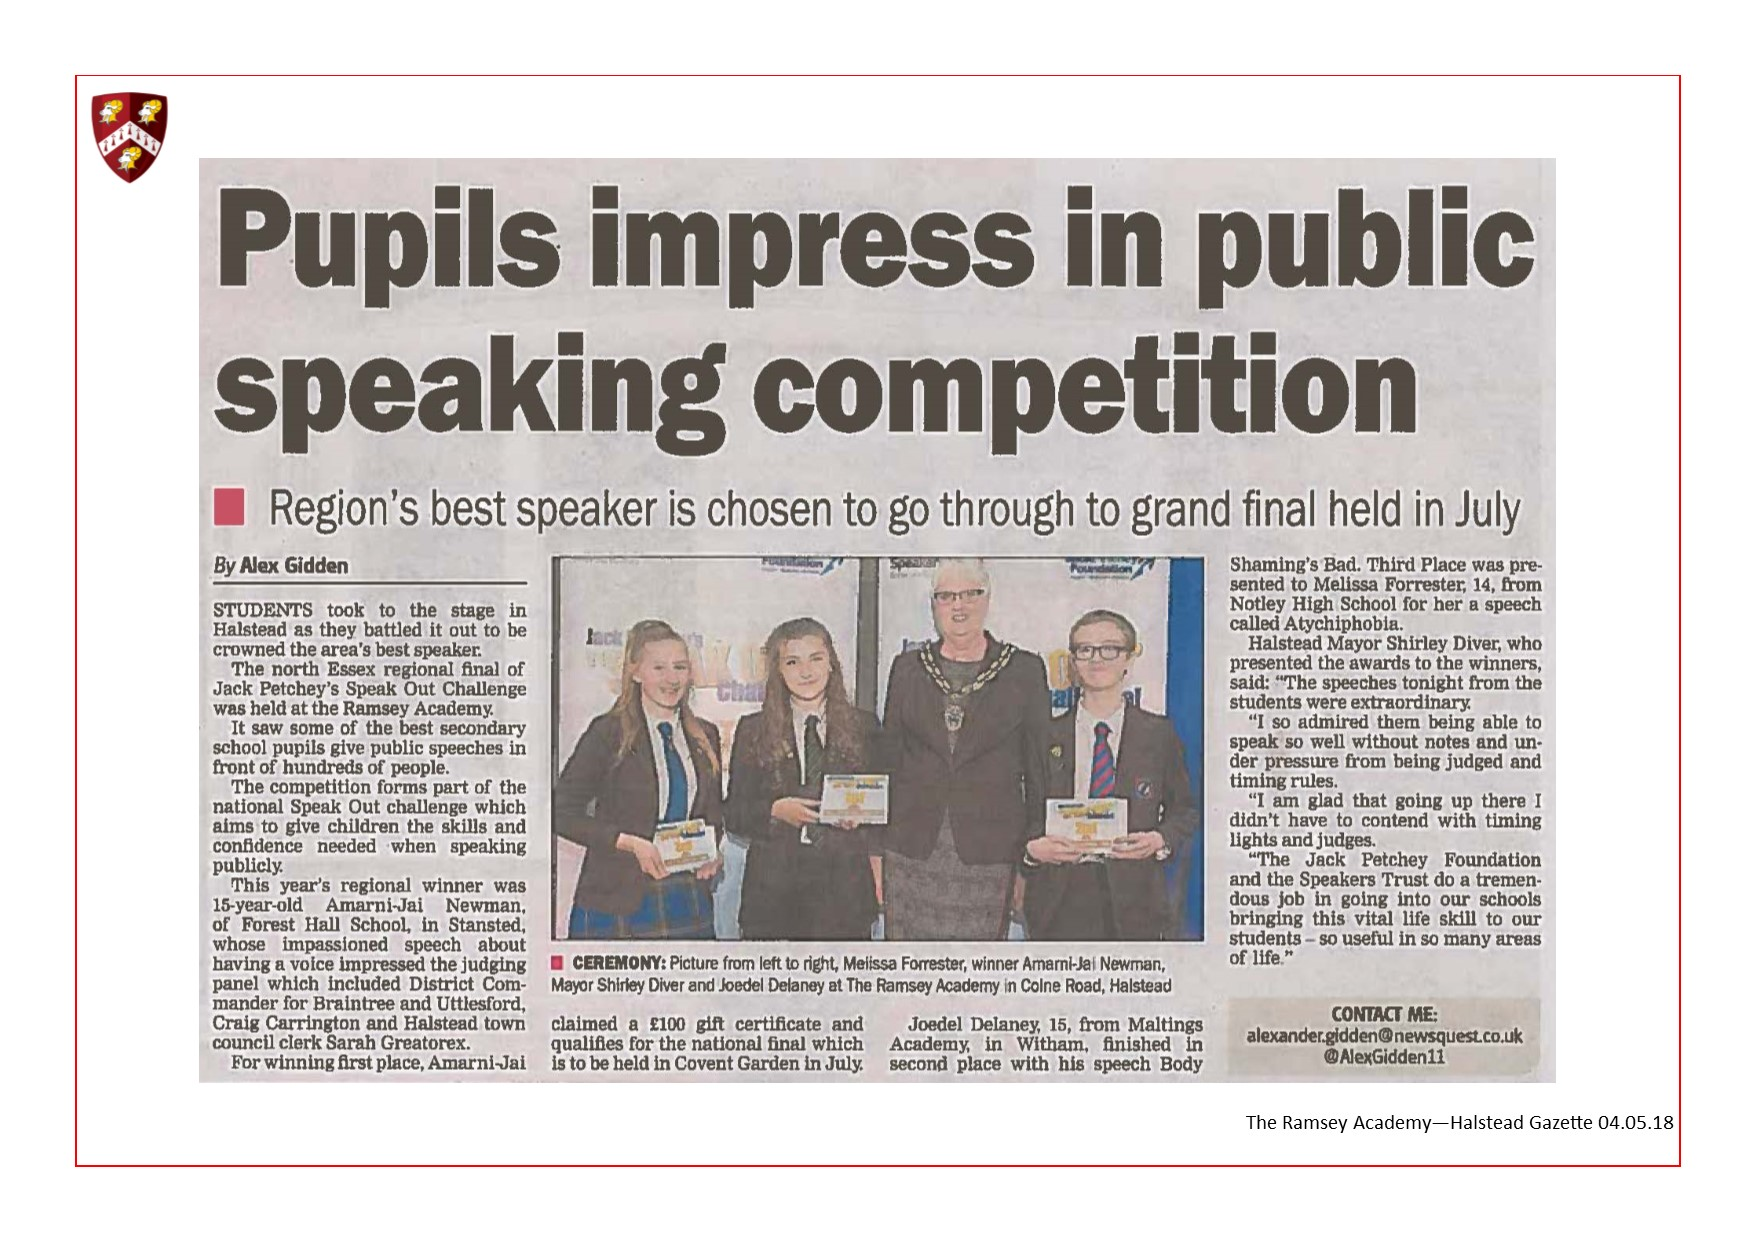 Pupils Impress In Public Speaking Competition 04.05.18